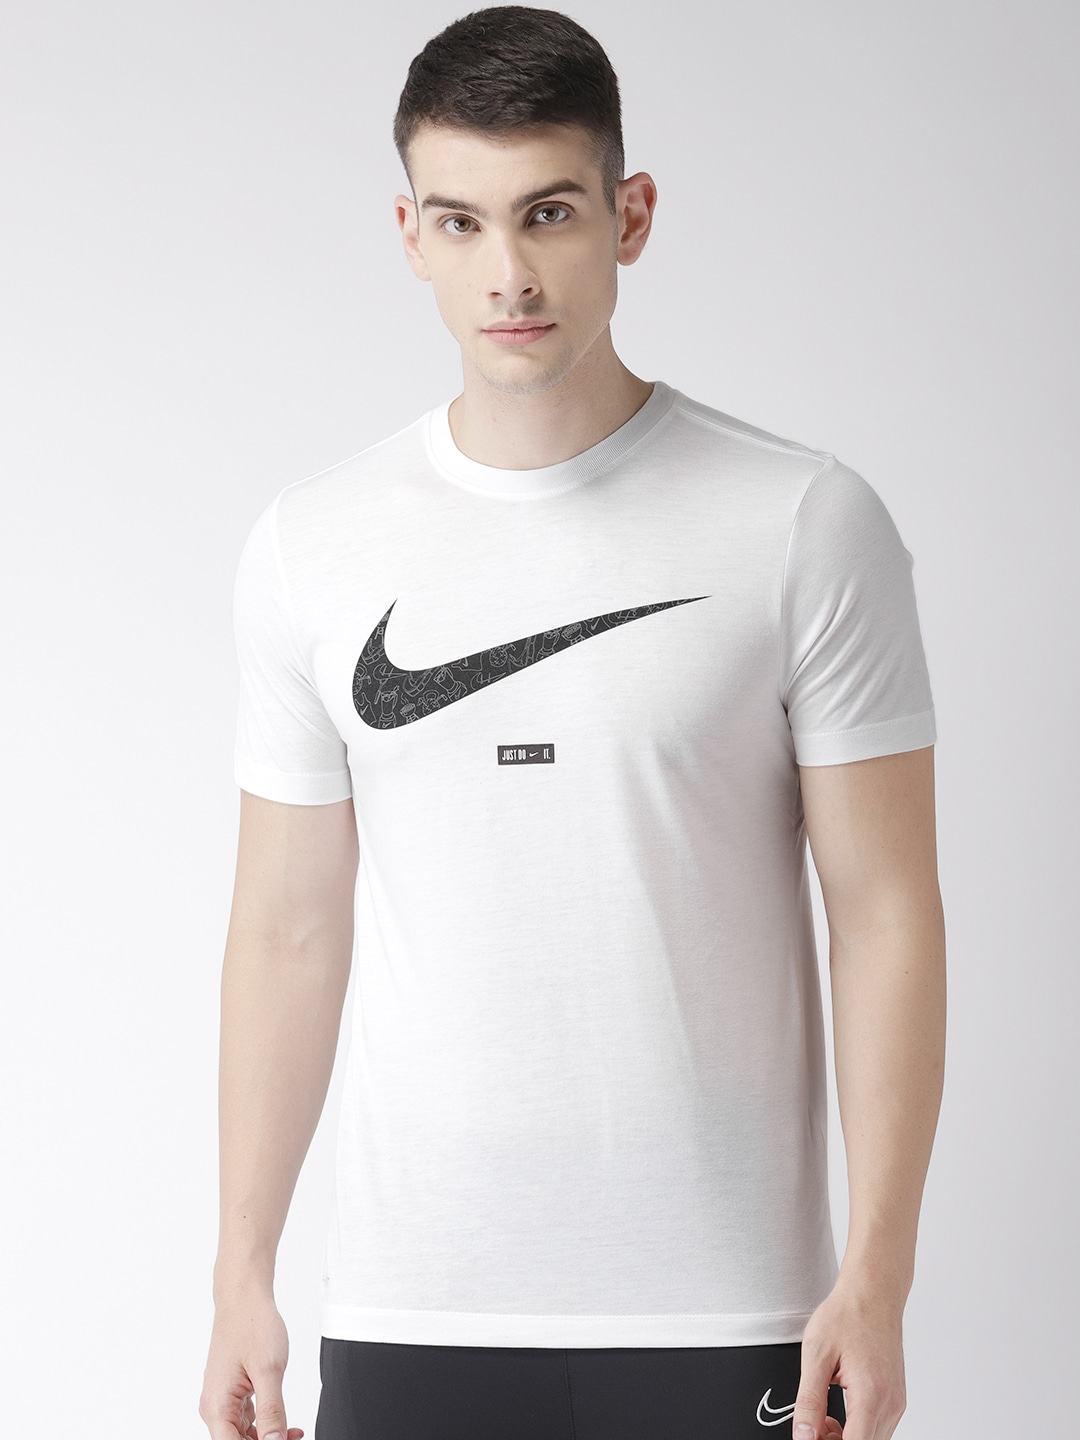 6e902a246c28 Nike - Shop for Nike Apparels Online in India